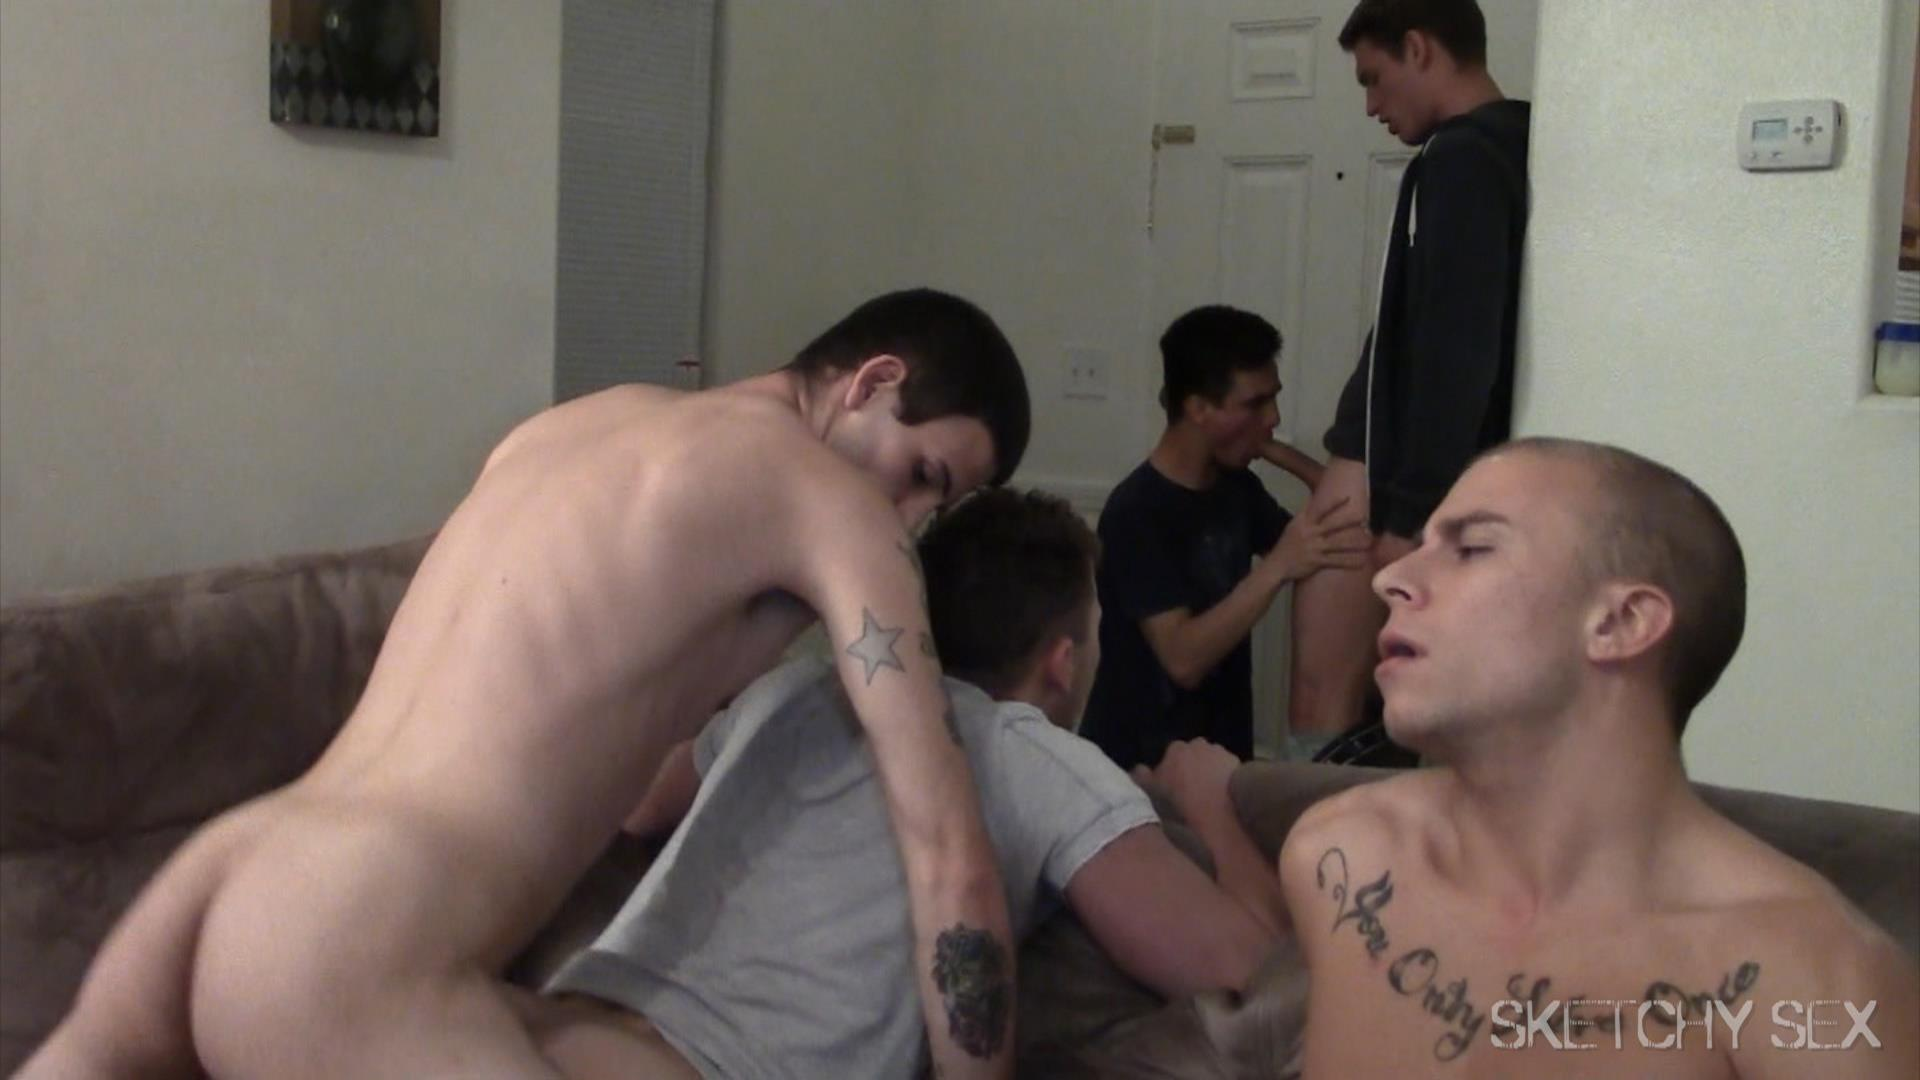 Sketchy-Sex-Bareback-Breeding-Party-Amateur-Gay-Porn-17 Hosting An Anonymous Bareback Breeding Party